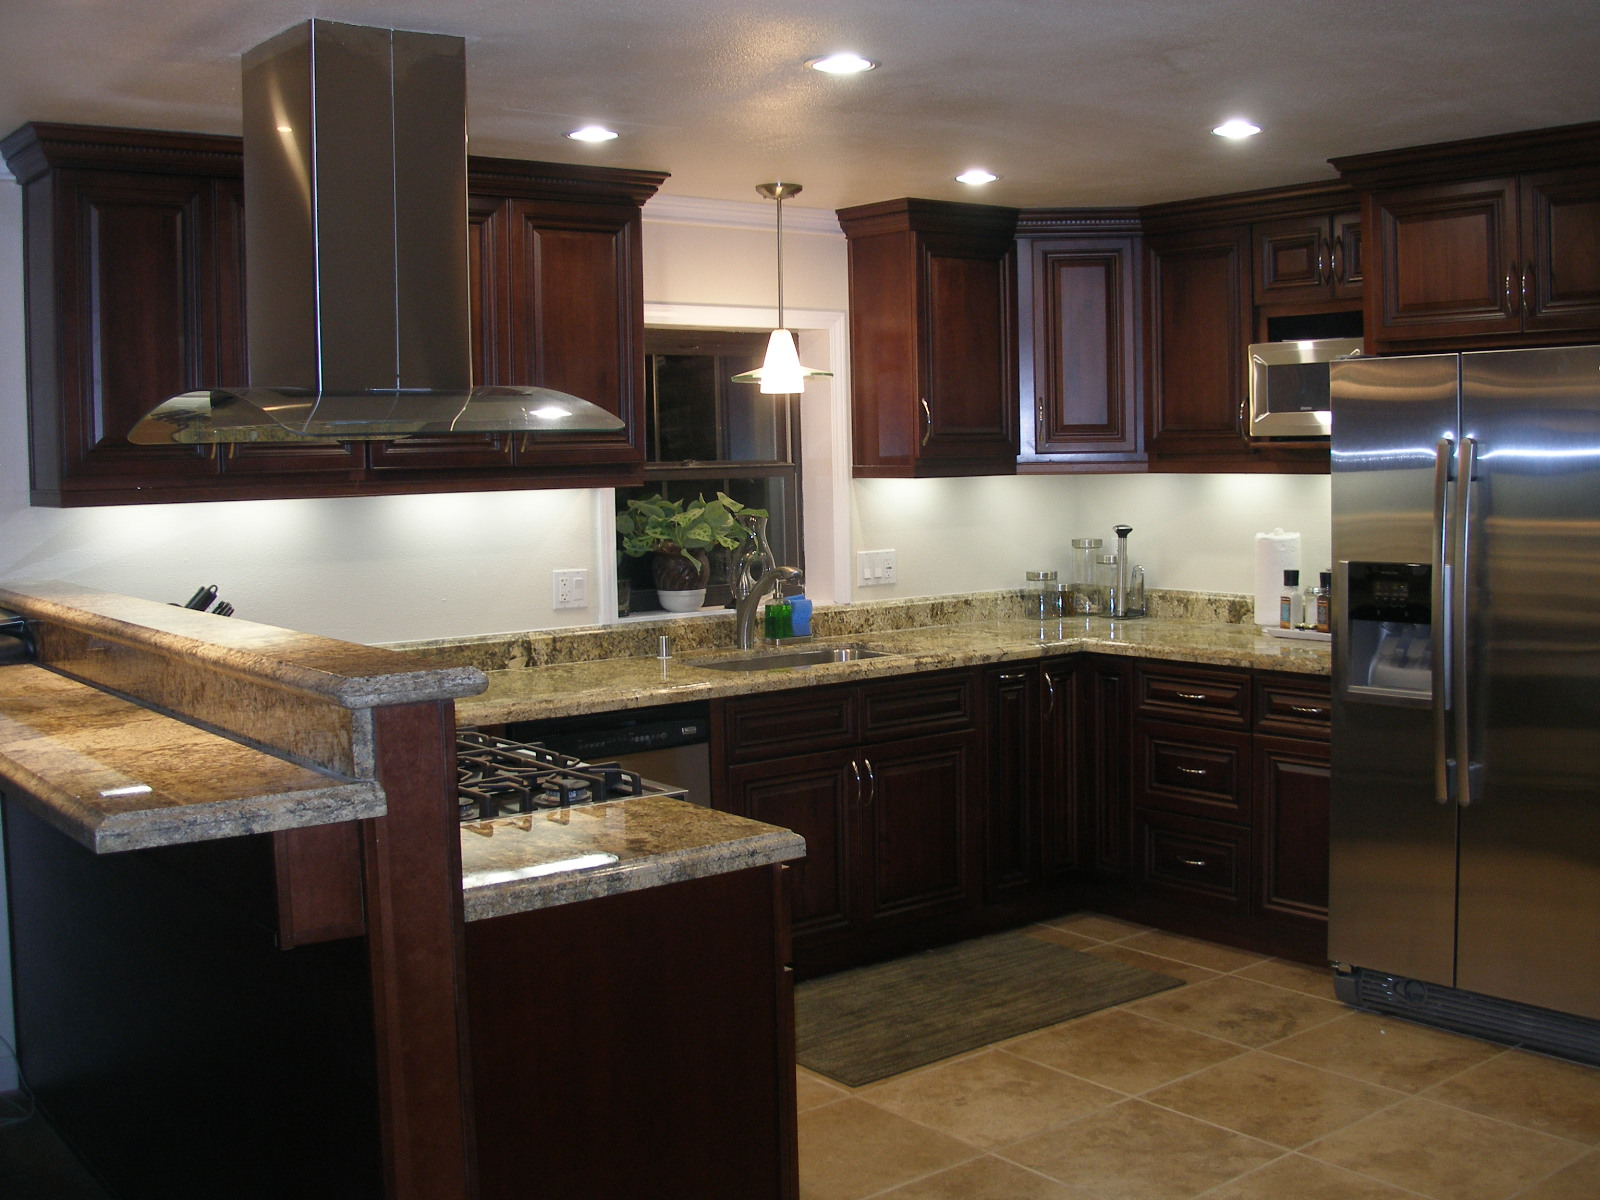 Kitchen Cabinet And Counter Remodeling